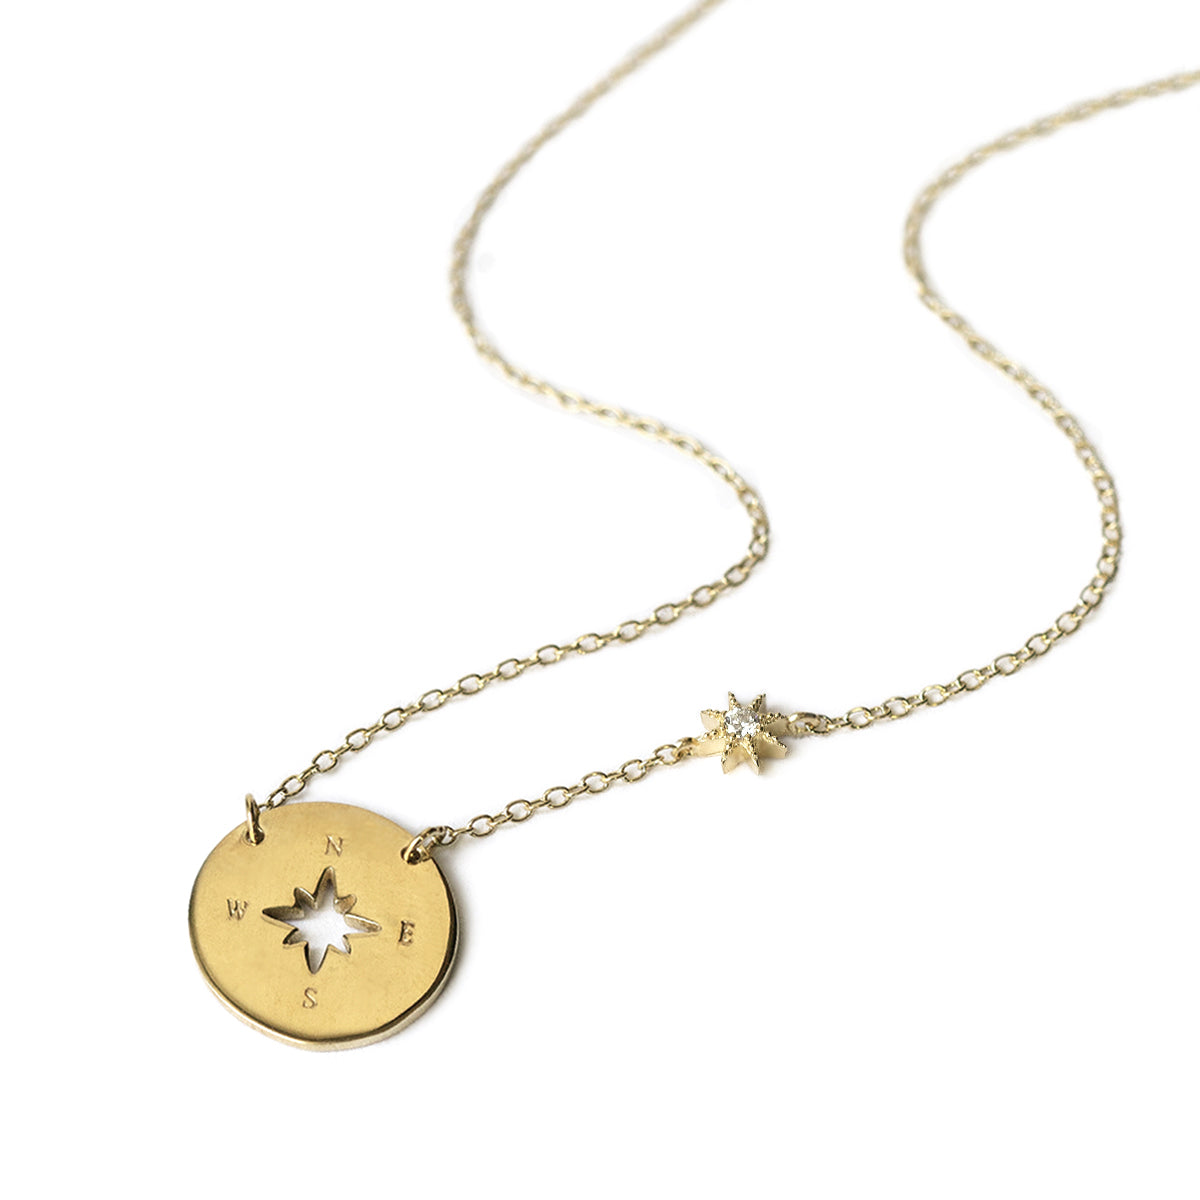 Gold Compass Necklace with a tiny Star